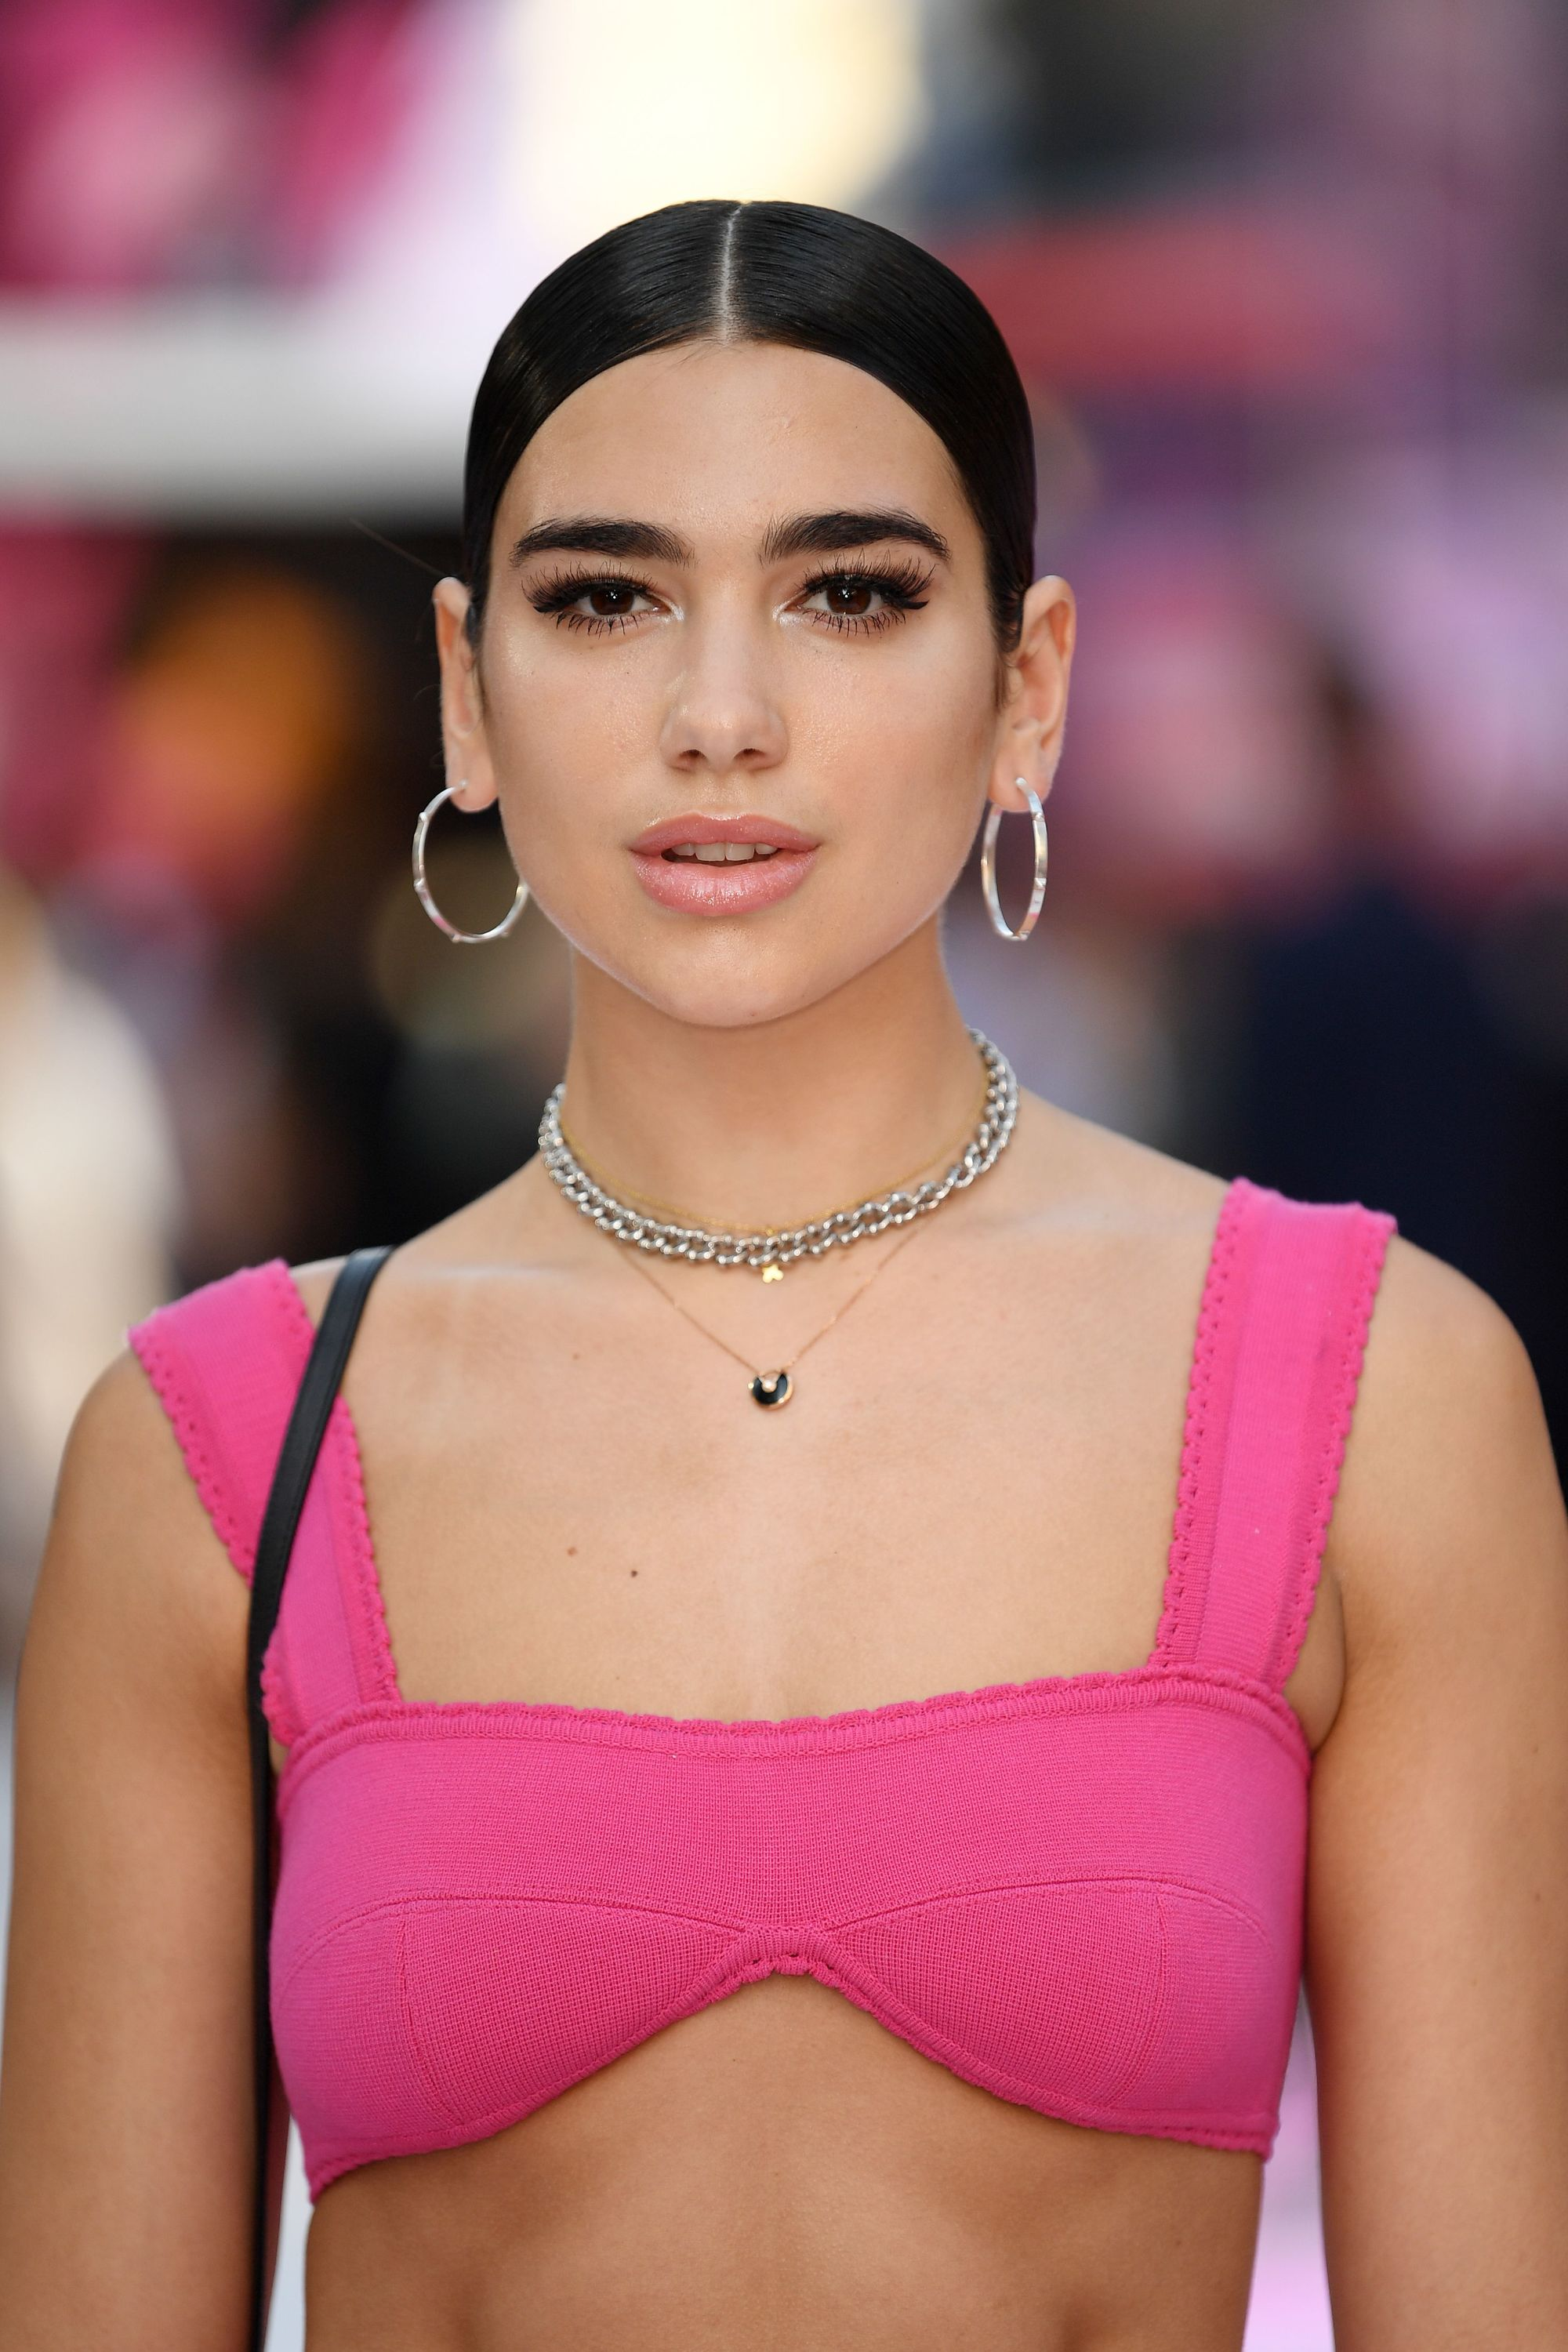 singer dua lipa with her dark hair in a slick centre parting